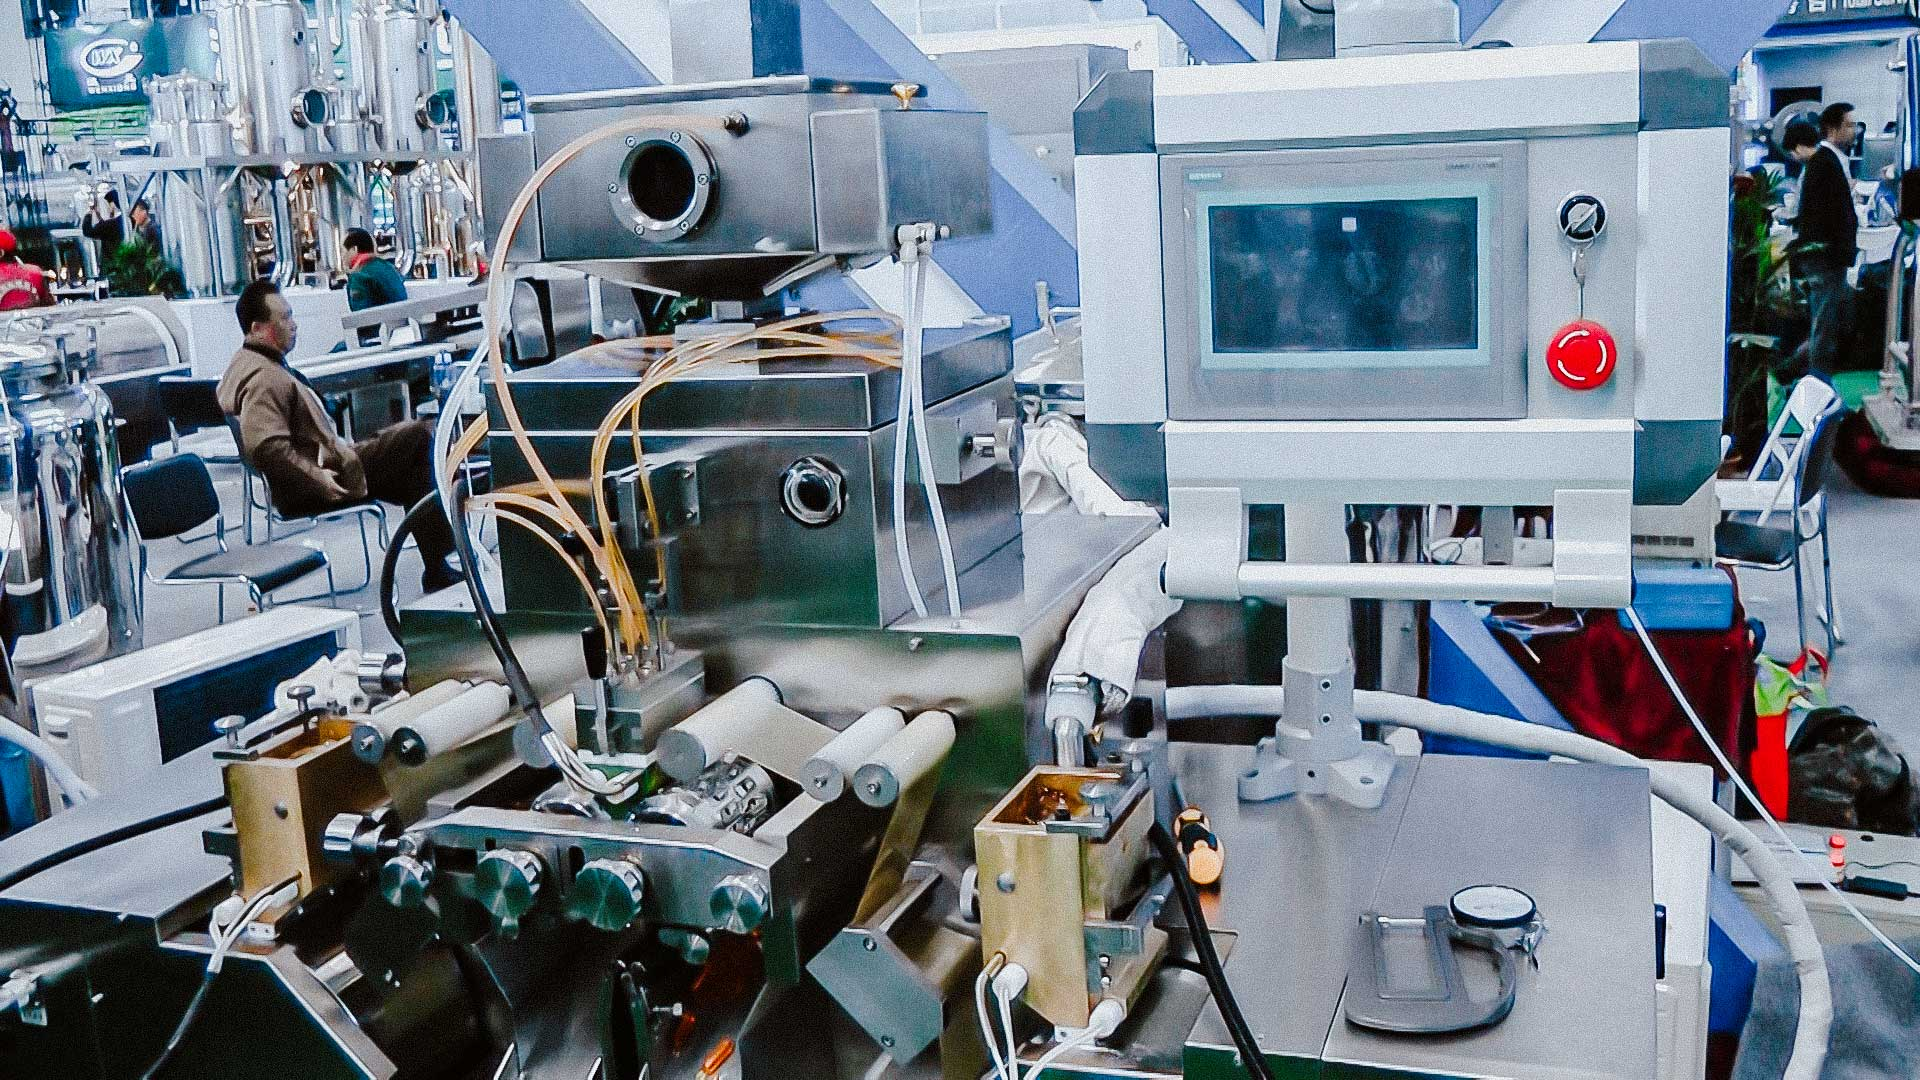 Pharmaceutical equipment for the production of soft gel gelatin capsules with oil inside